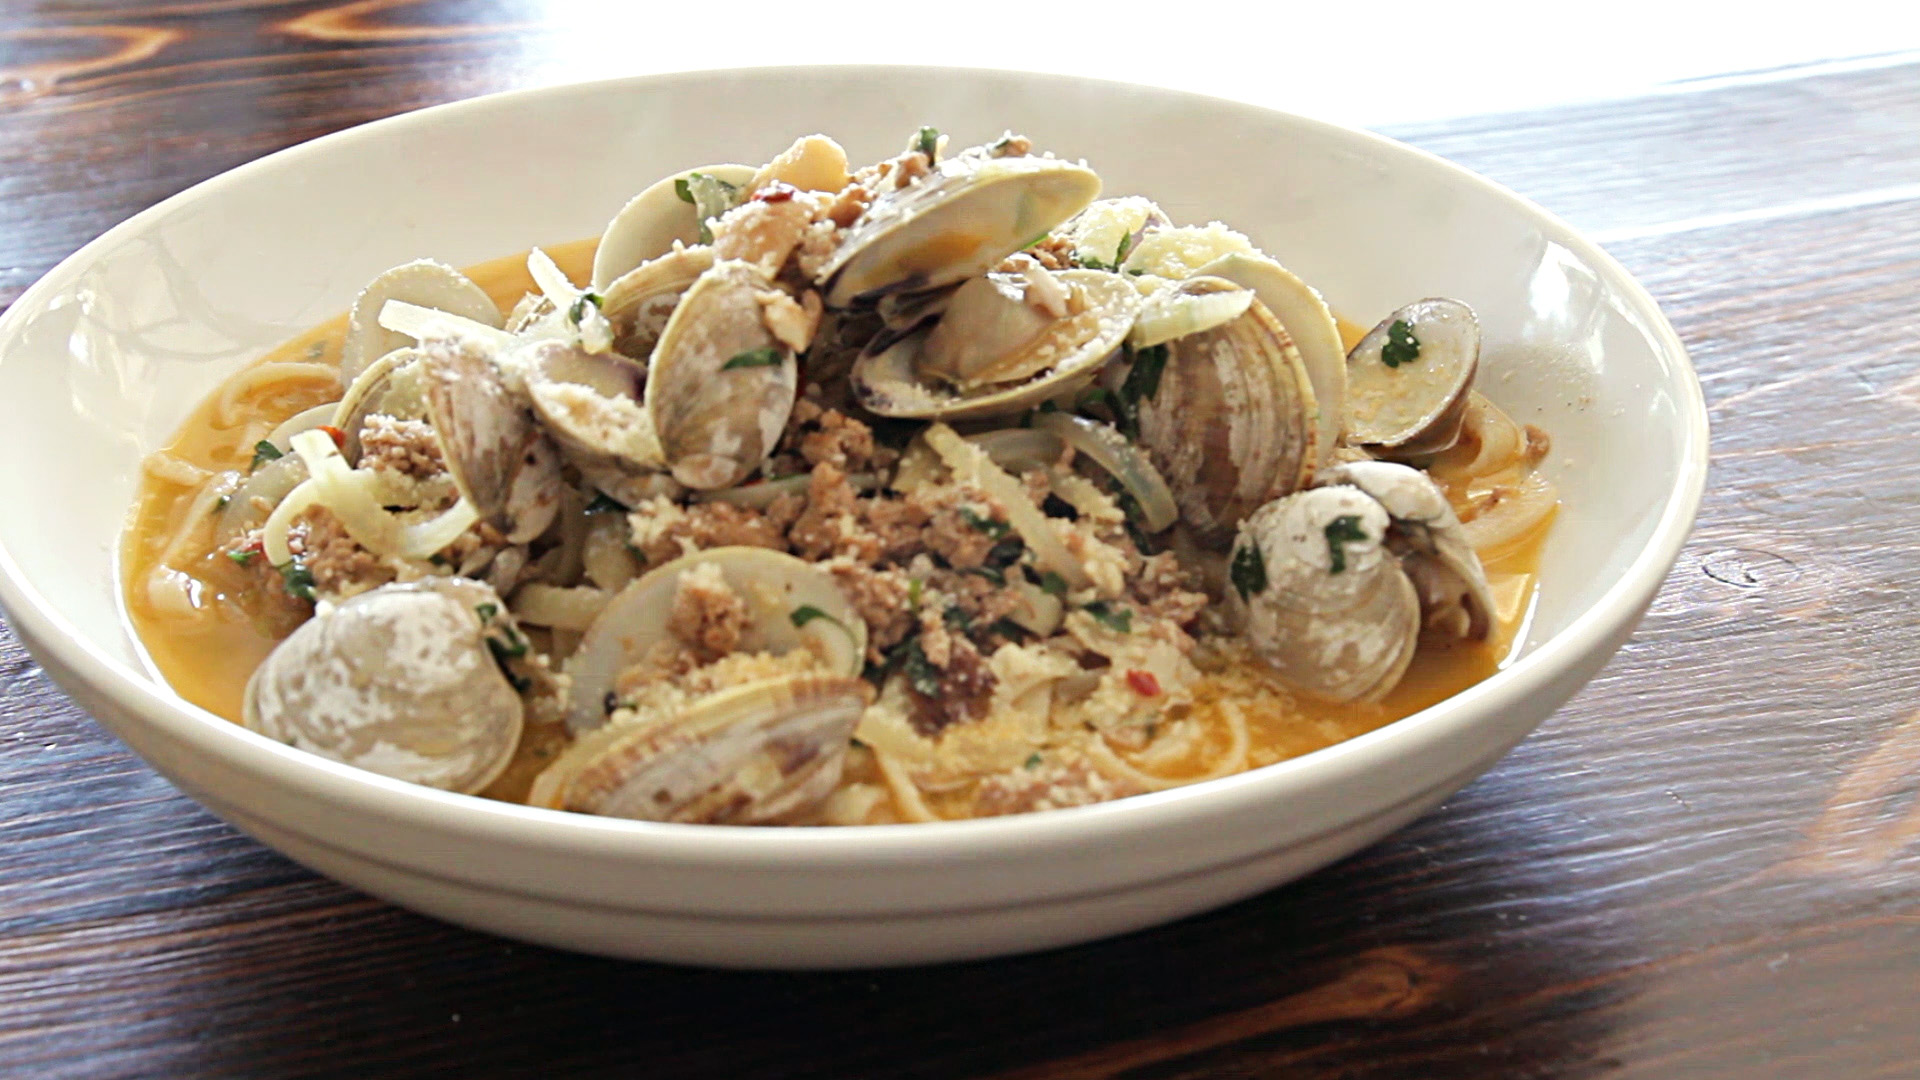 LUPO'S LINGUINI AND CLAMS